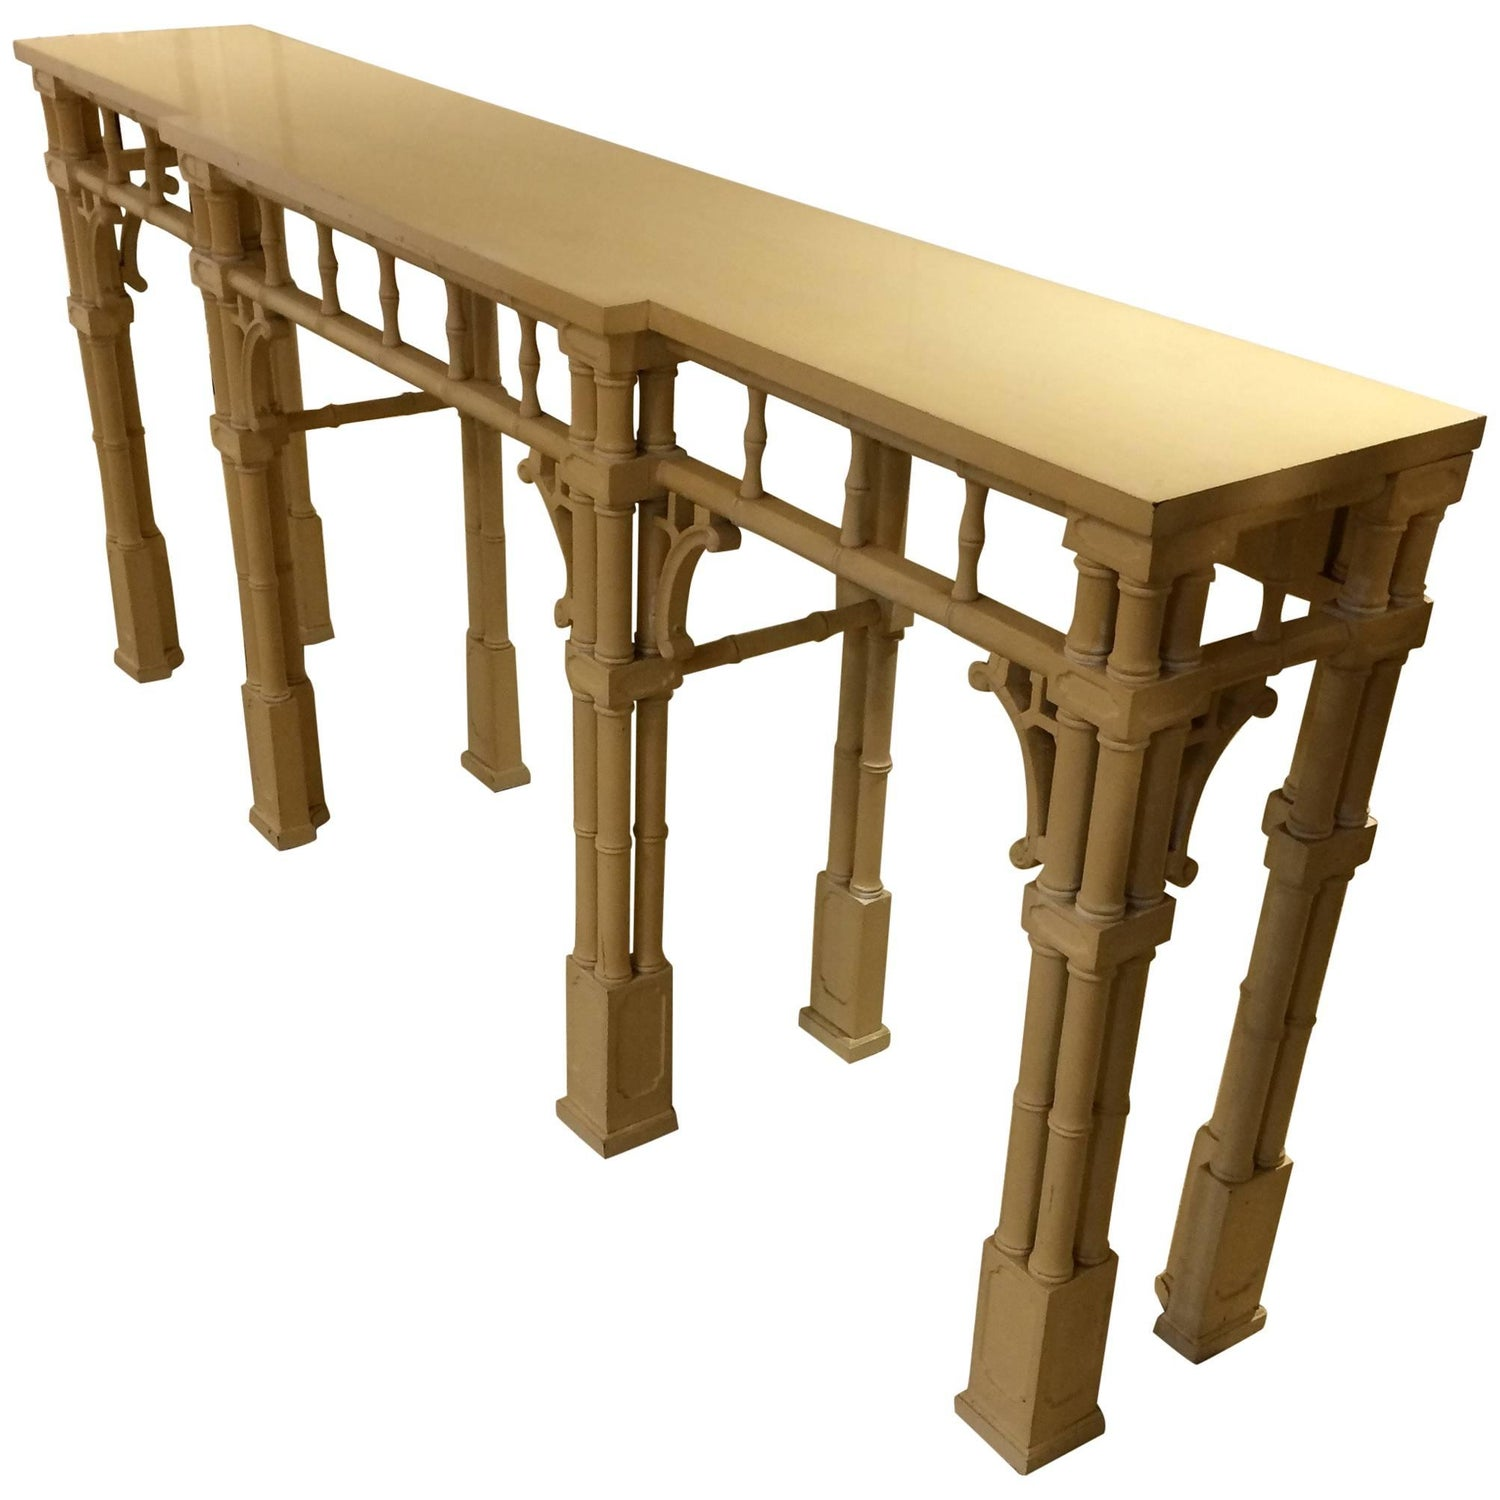 Chinese chippendale console tables 14 for sale at 1stdibs elegant long and narrow painted faux bamboo and wood console table geotapseo Gallery